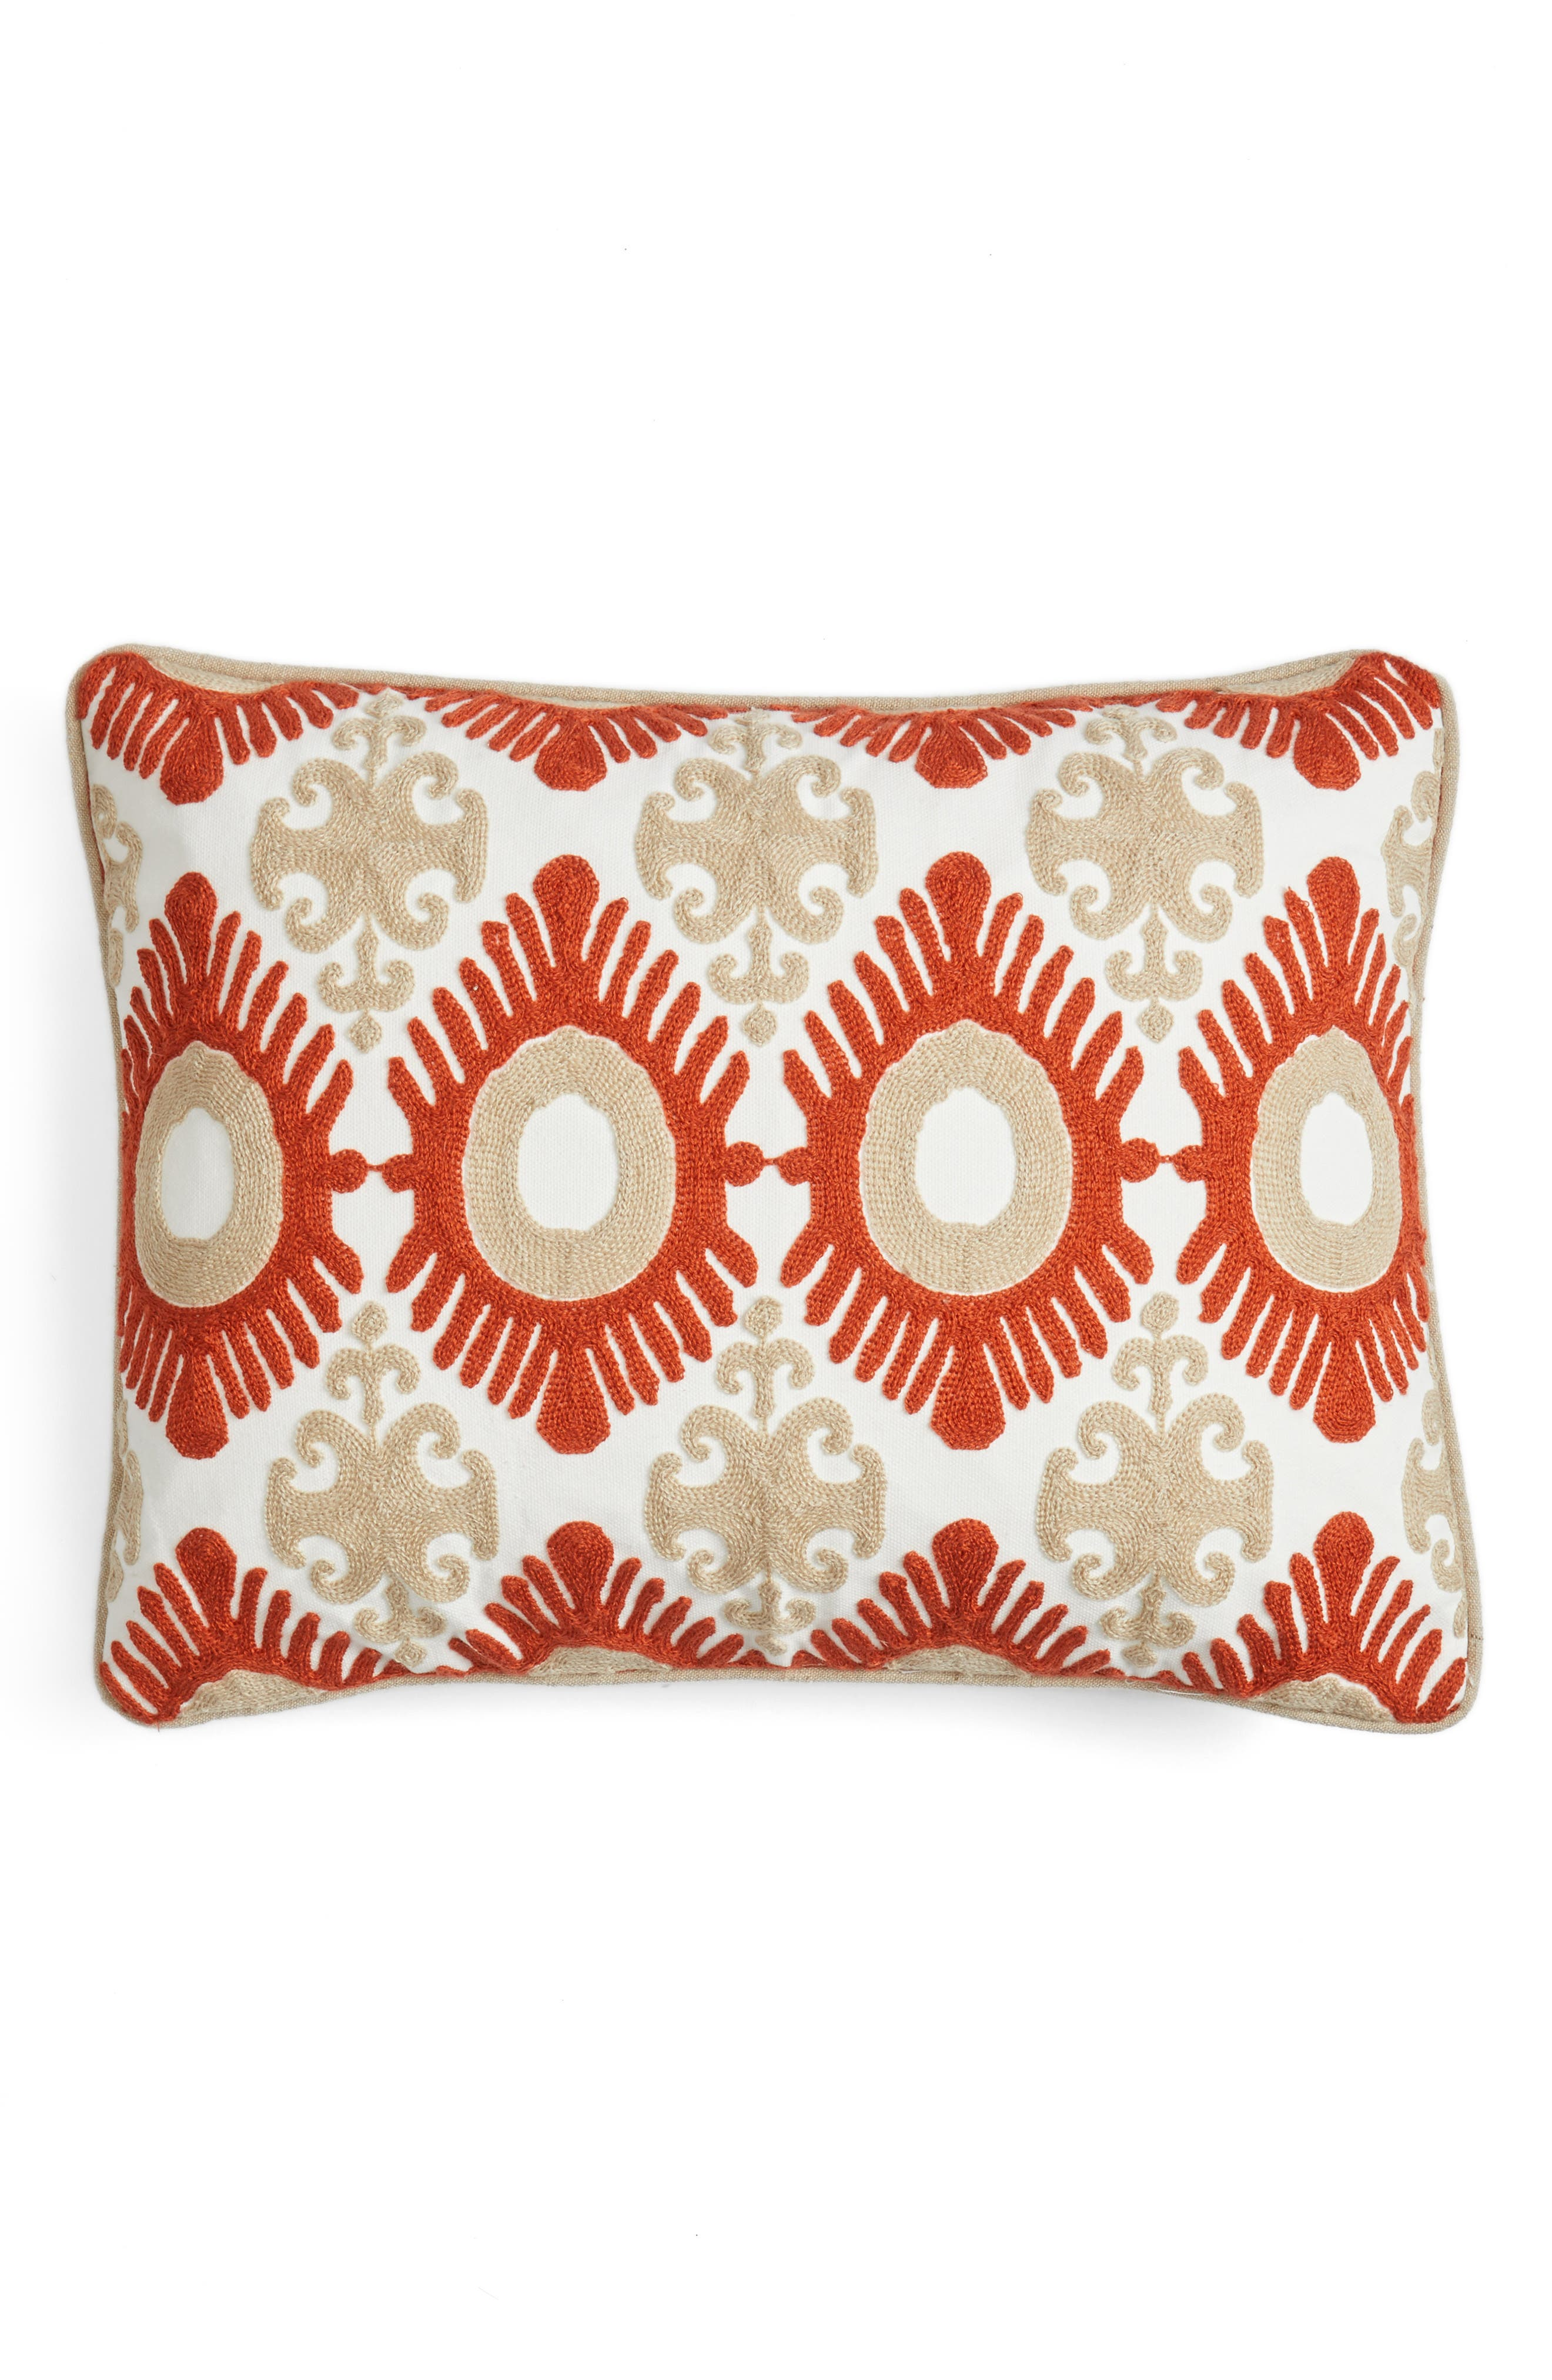 Levtex Fira Crewel Stitch Accent Pillow